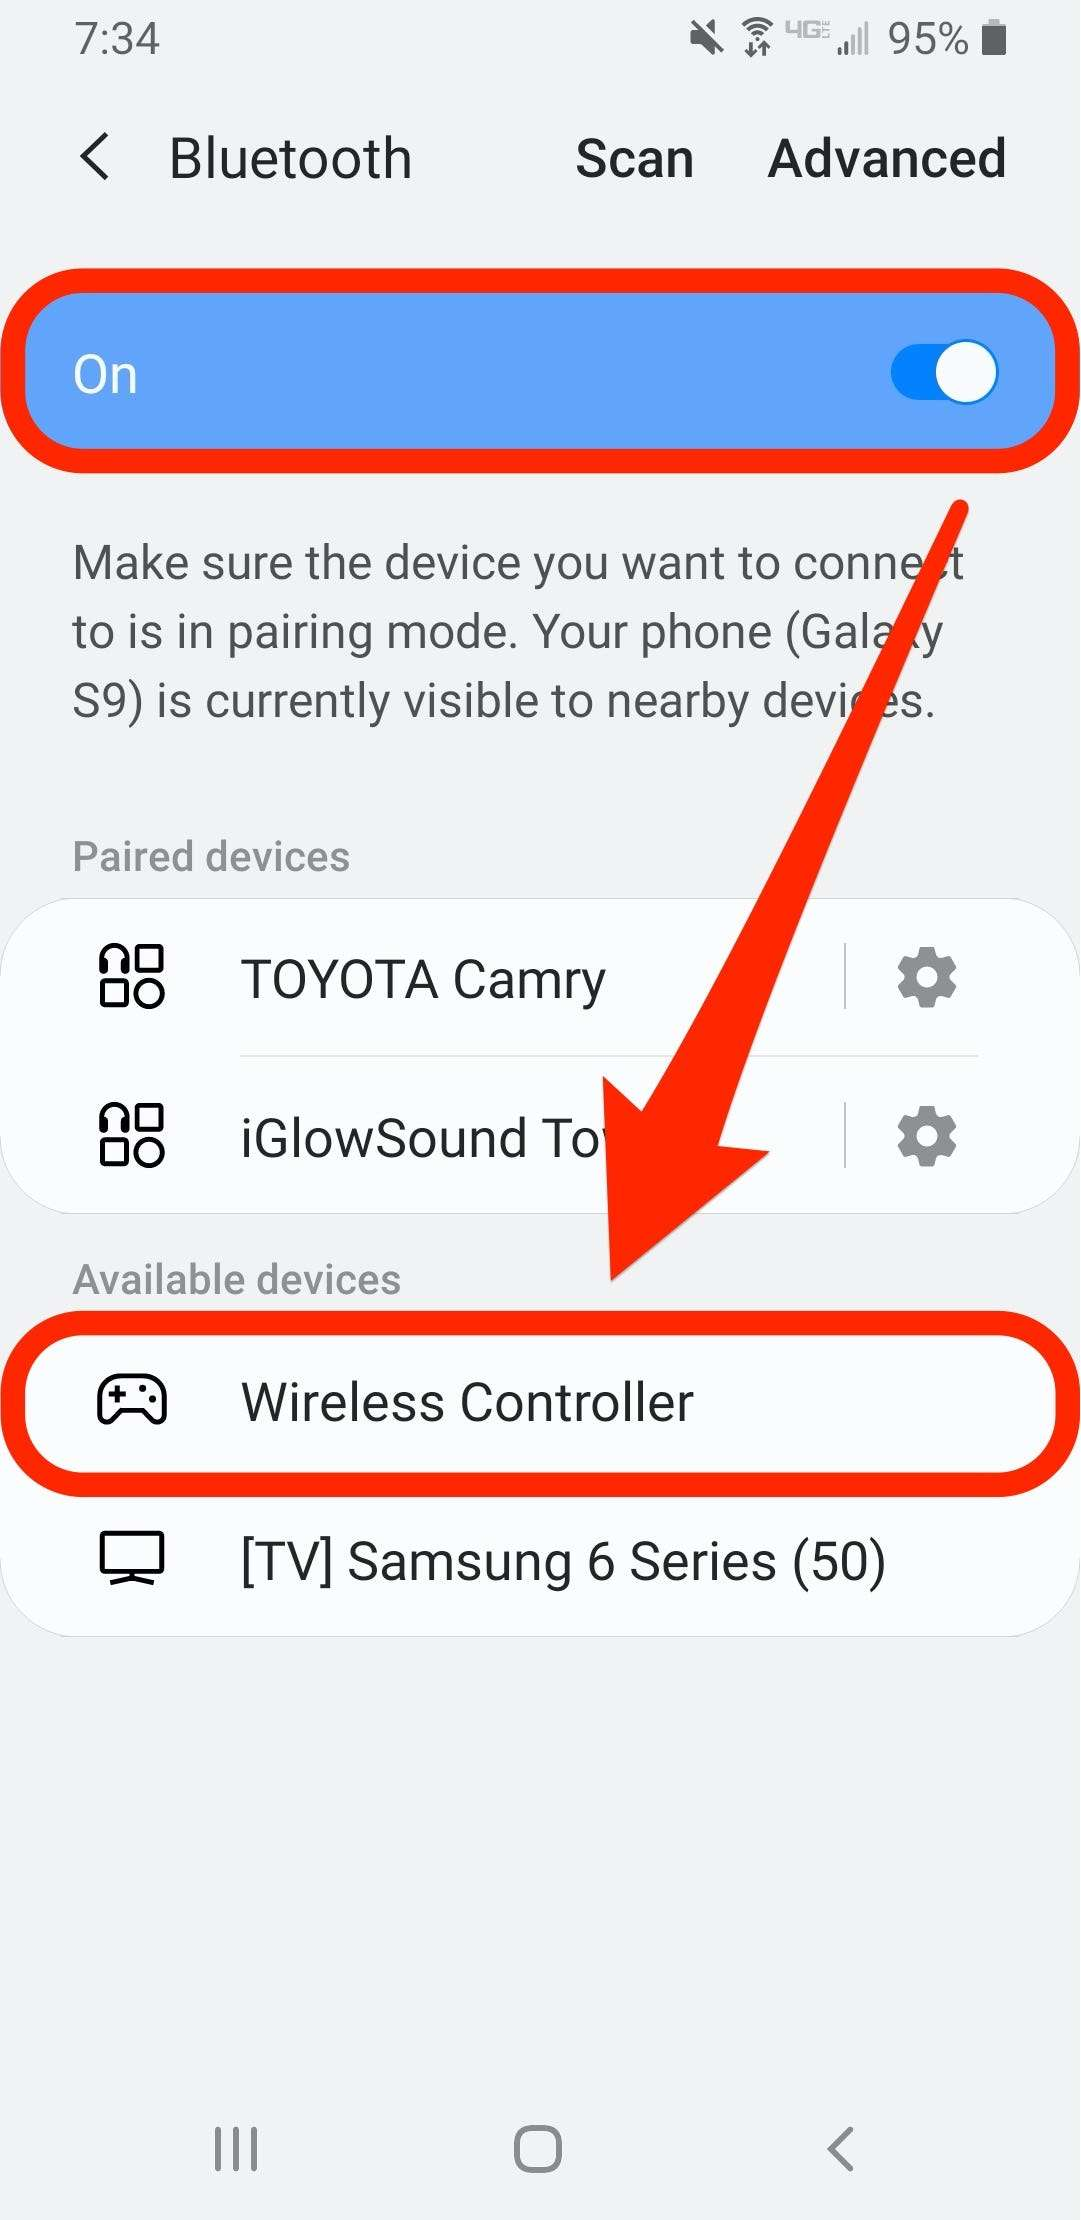 How to connect a PS4 controller to your Android phone or tablet to play games with it